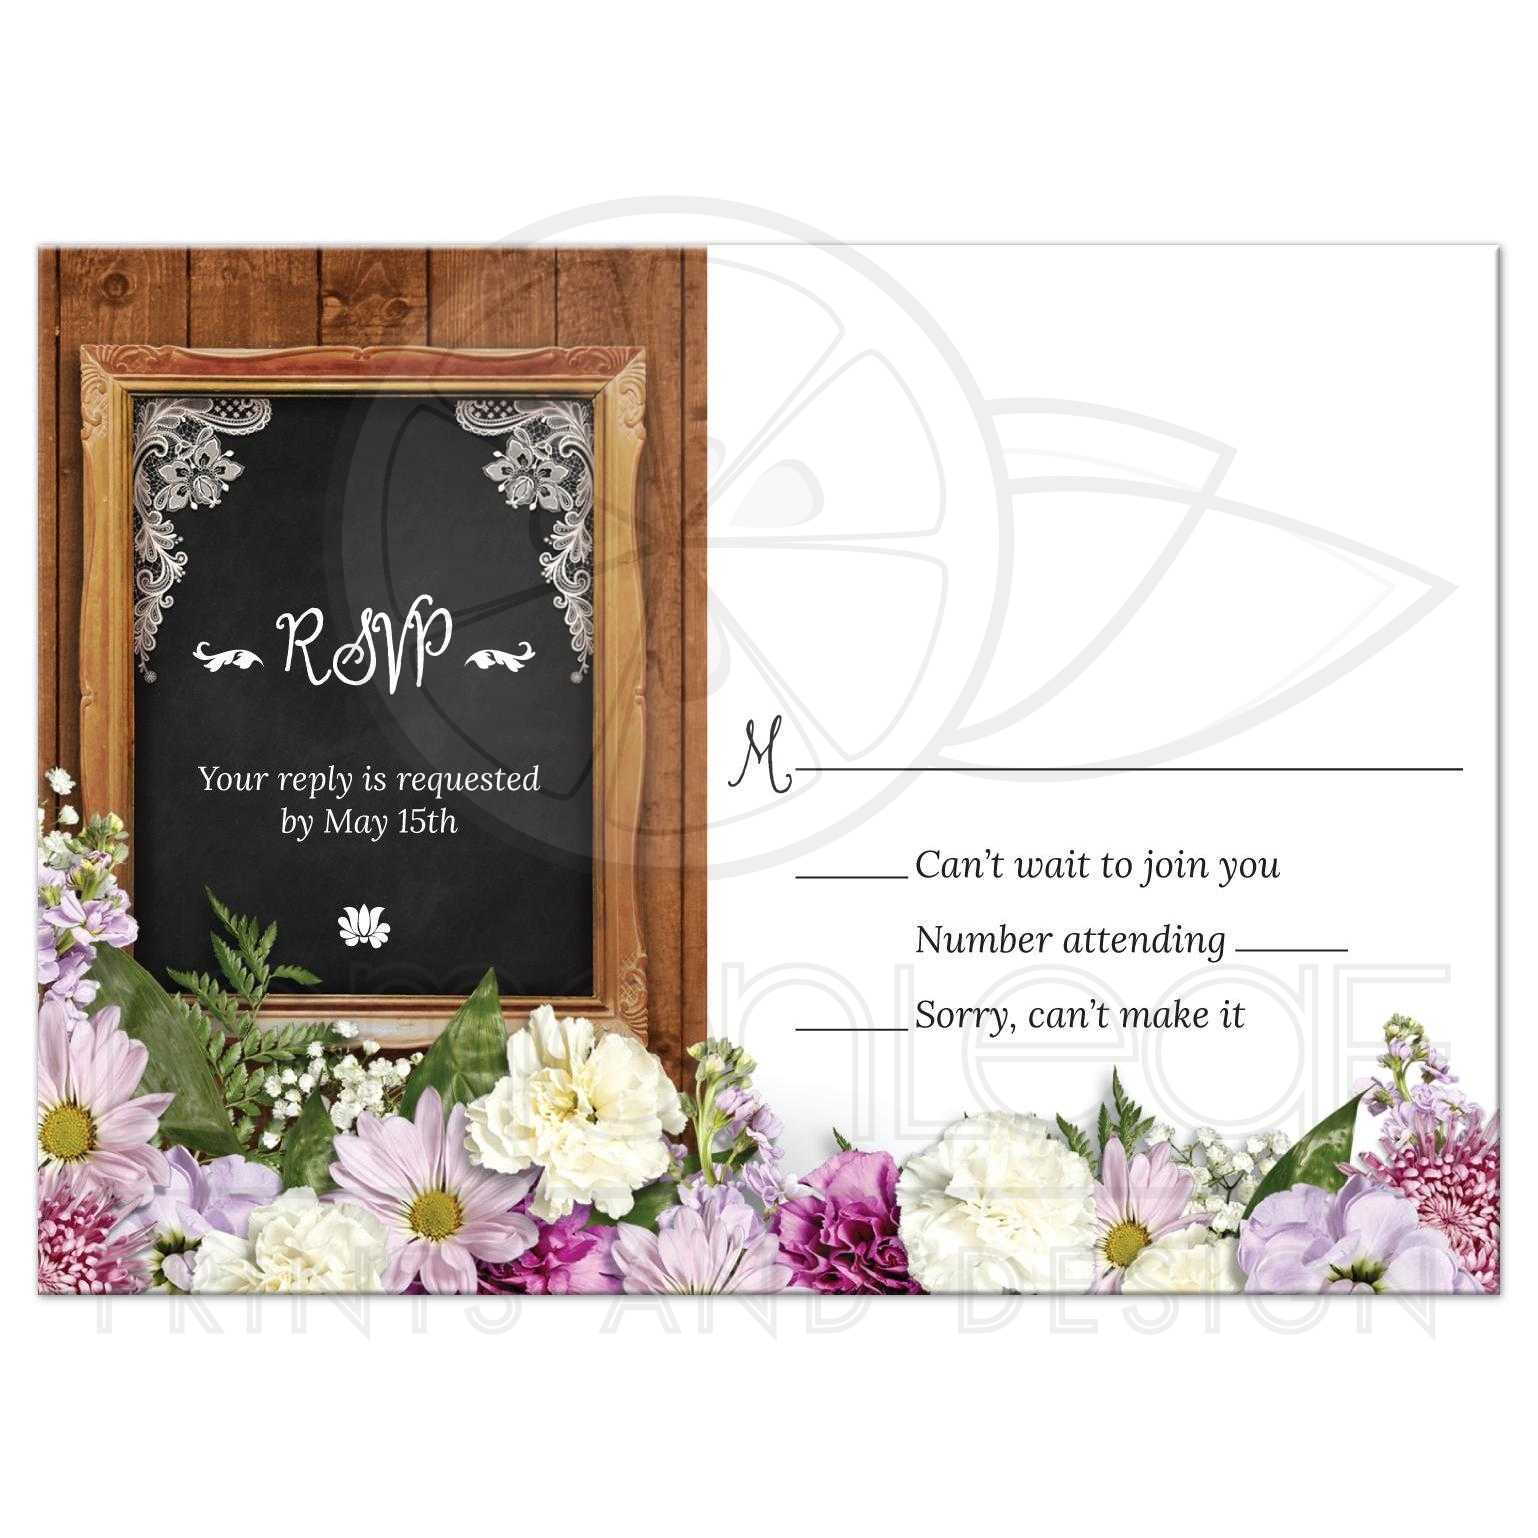 Rustic Spring Chalkboard Picture Frame Floral Wedding Reply RSVP Card